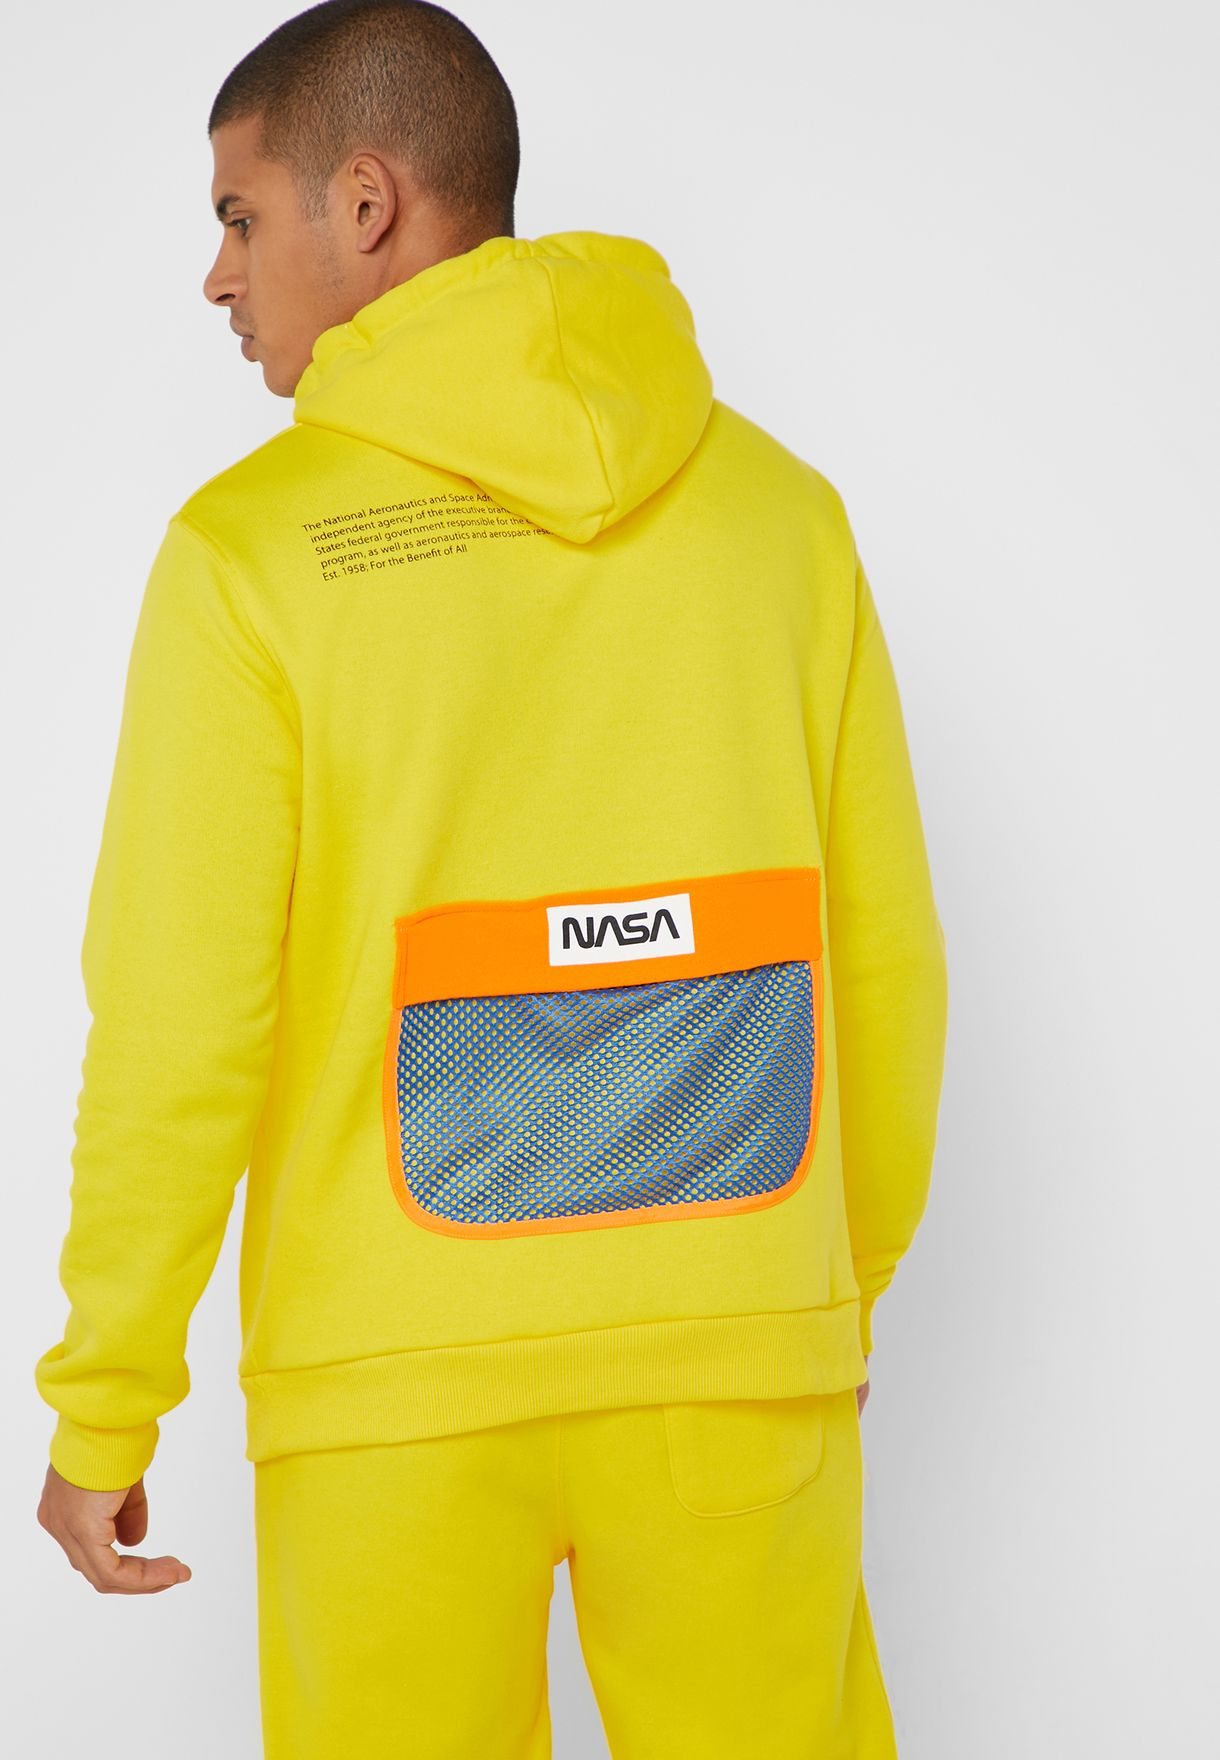 7a2cf6f76403 NASA Graphic Drawstring Hoodie. NASA Logo Graphic Shirt. Shop Forever 21  silver NASA Graphic Reflective Hoodie 324291 for Men ...